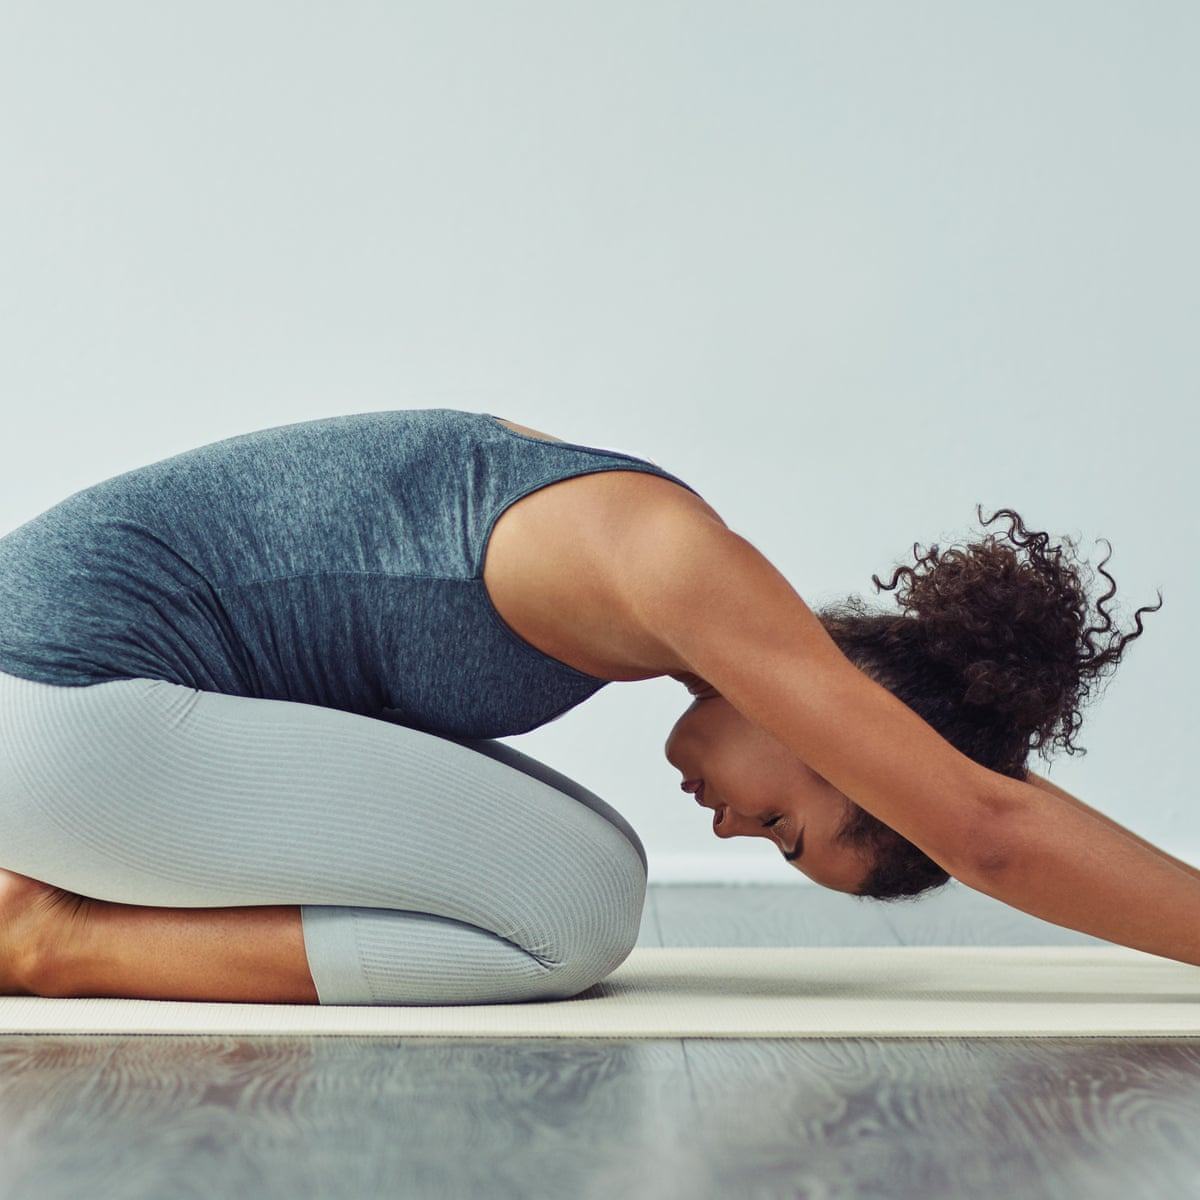 Yoga V Pilates Both Are Popular But Which Would Work Best For You Life And Style The Guardian